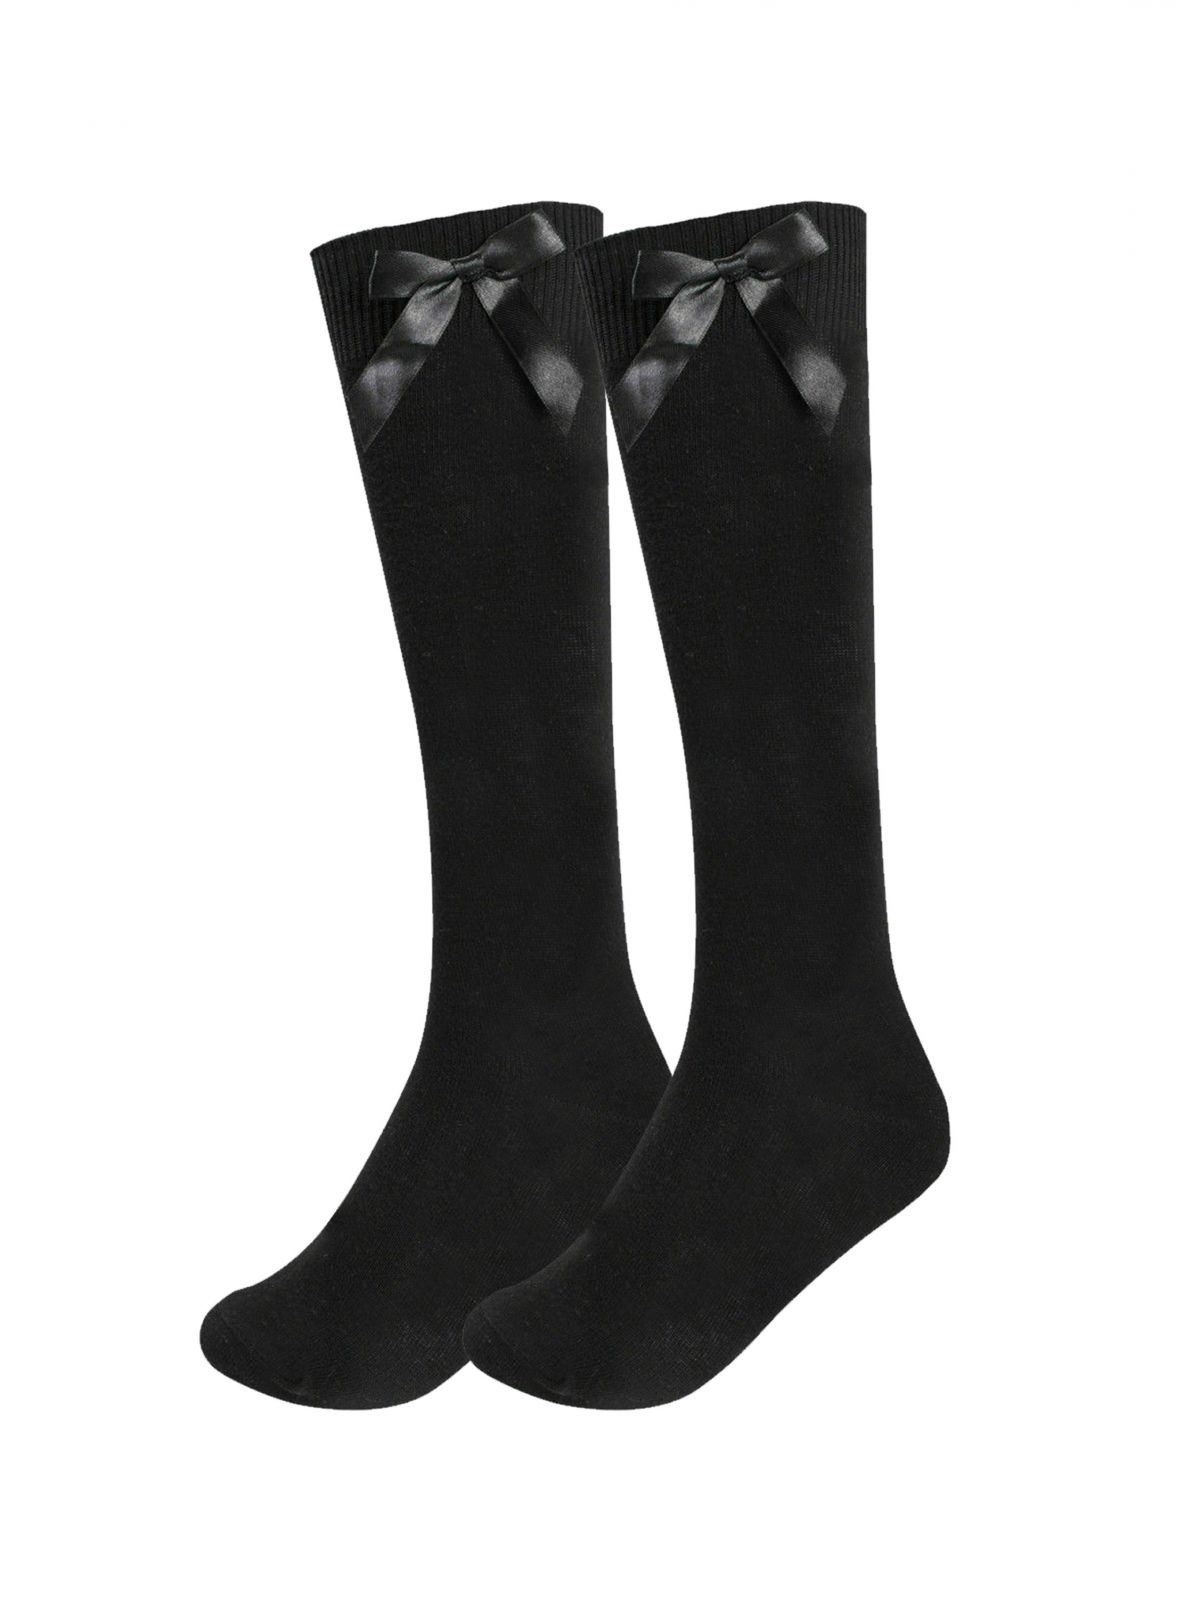 Accessories | Girls Knee High Long School Socks with Satin Bow